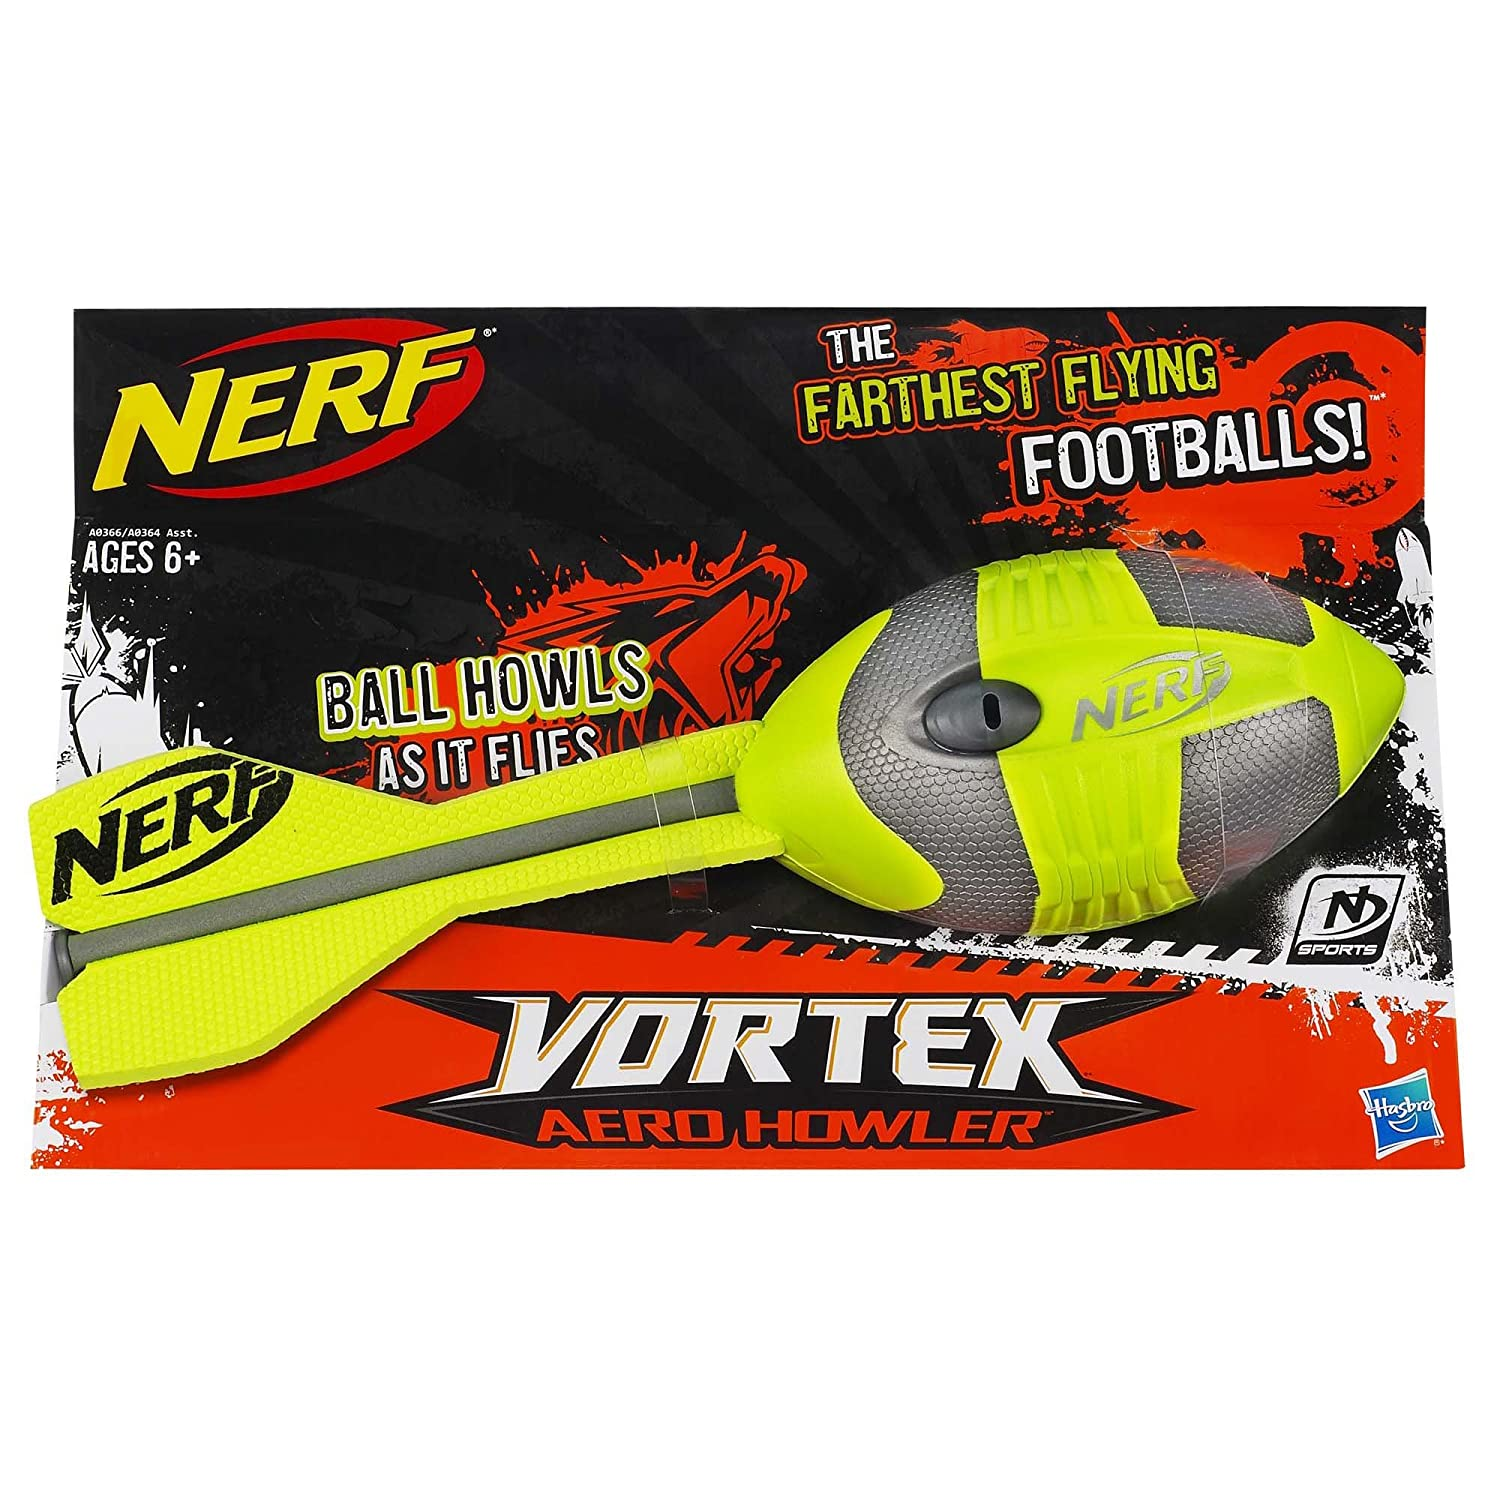 Amazon Nerf N Sports Vortex Aero Howler Football Green and Grey Toys & Games